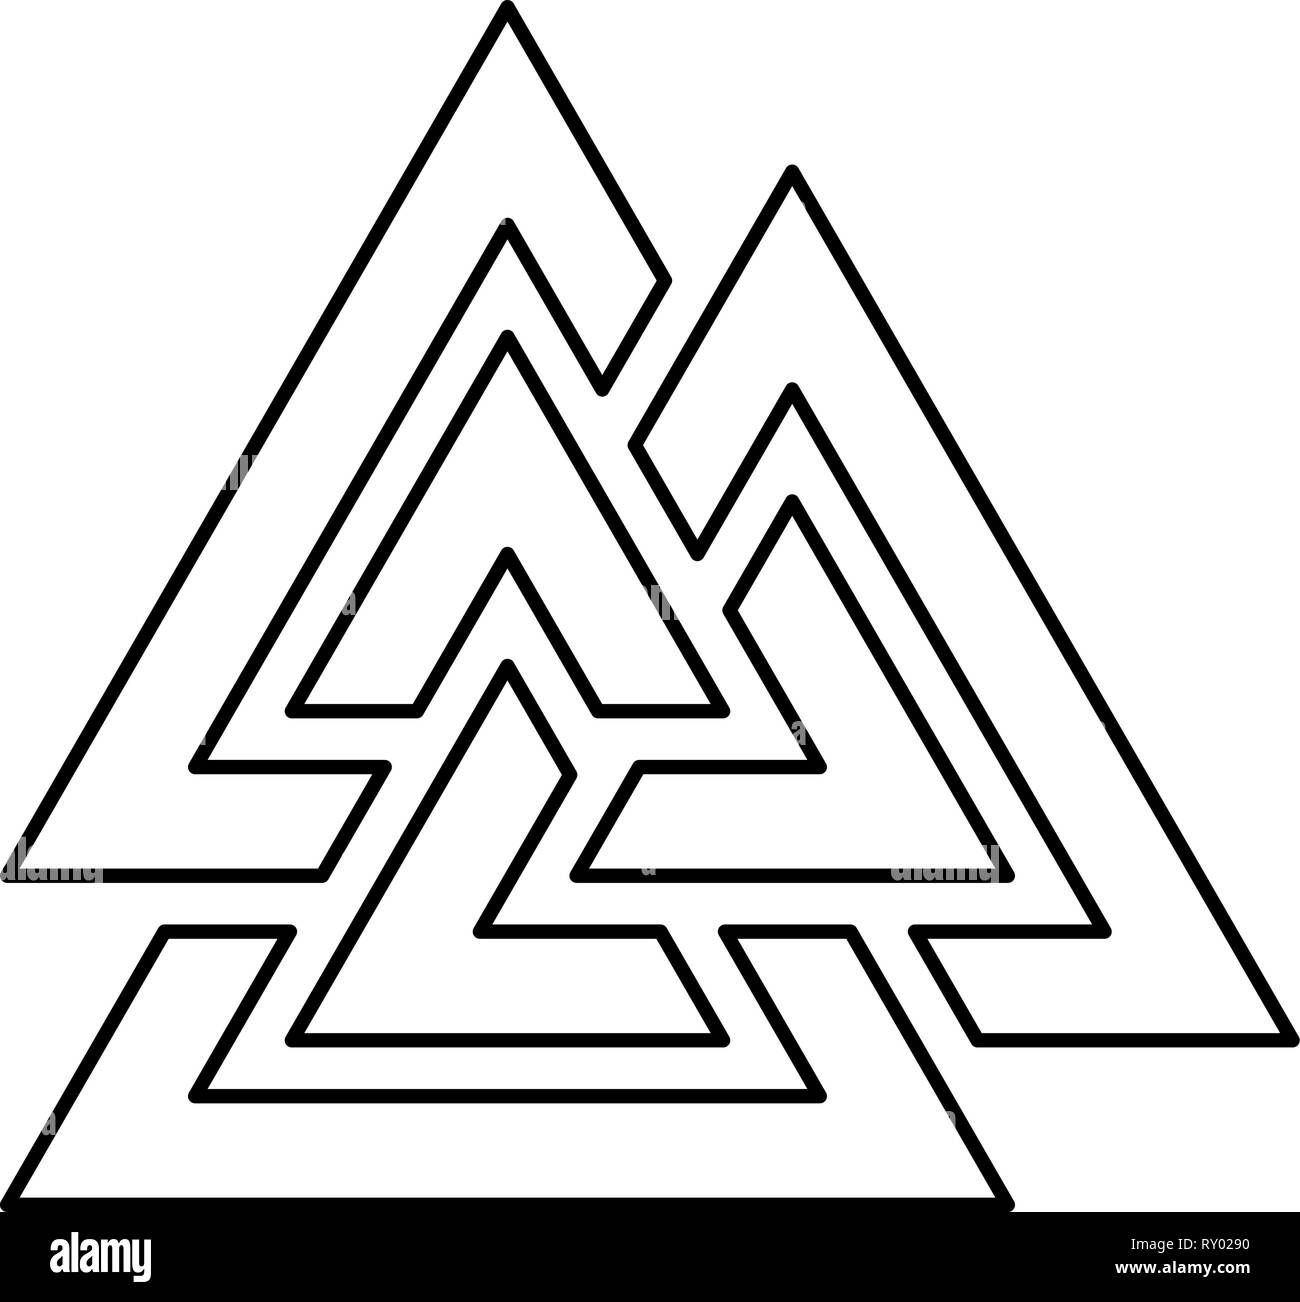 Valknut symbol icon black color outline vector illustration flat style image - Stock Vector